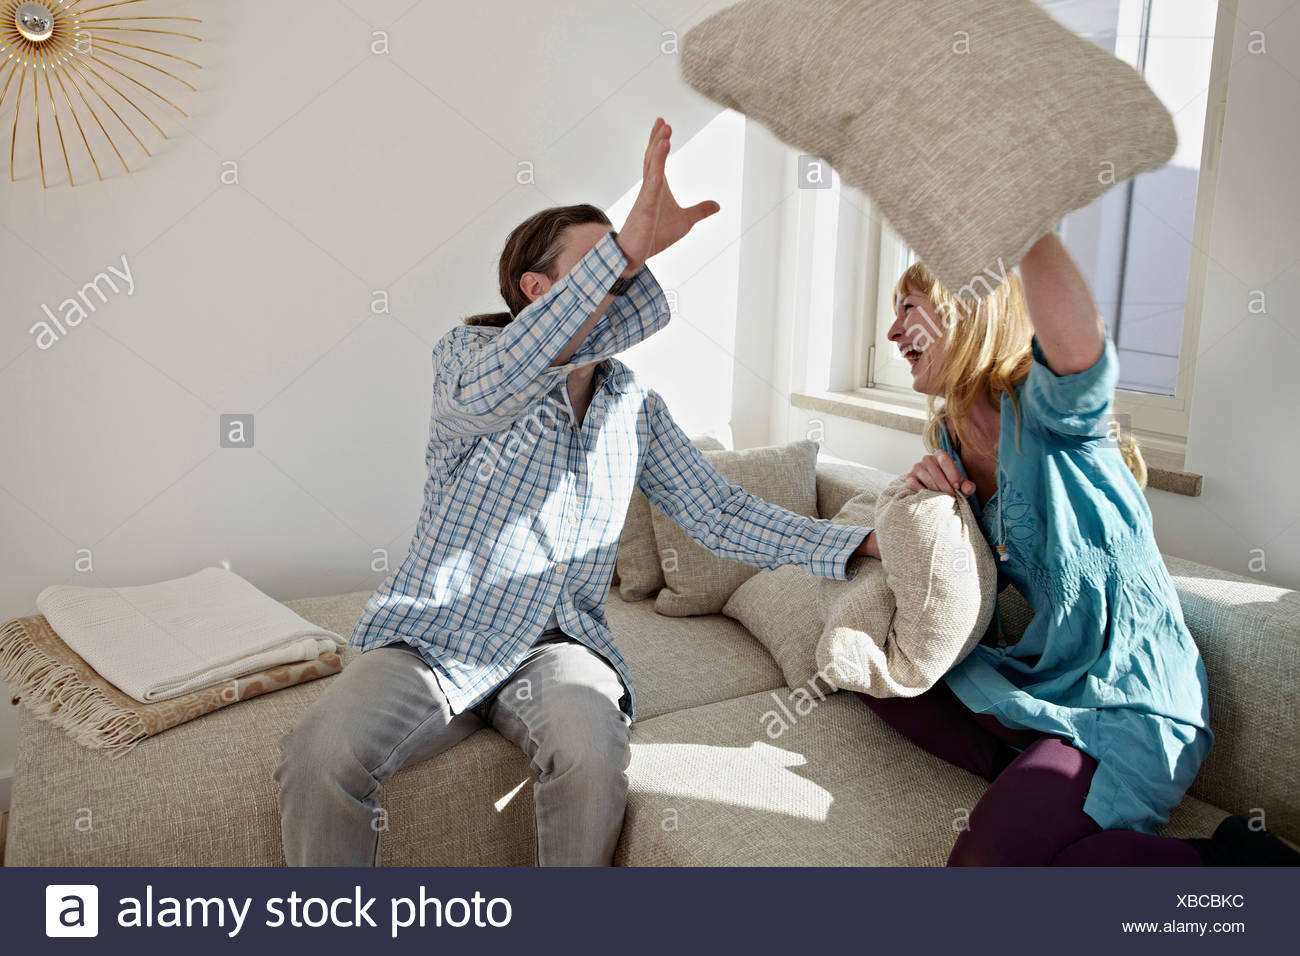 A Couple Pillow Fights In Their Living Room - Stock Image